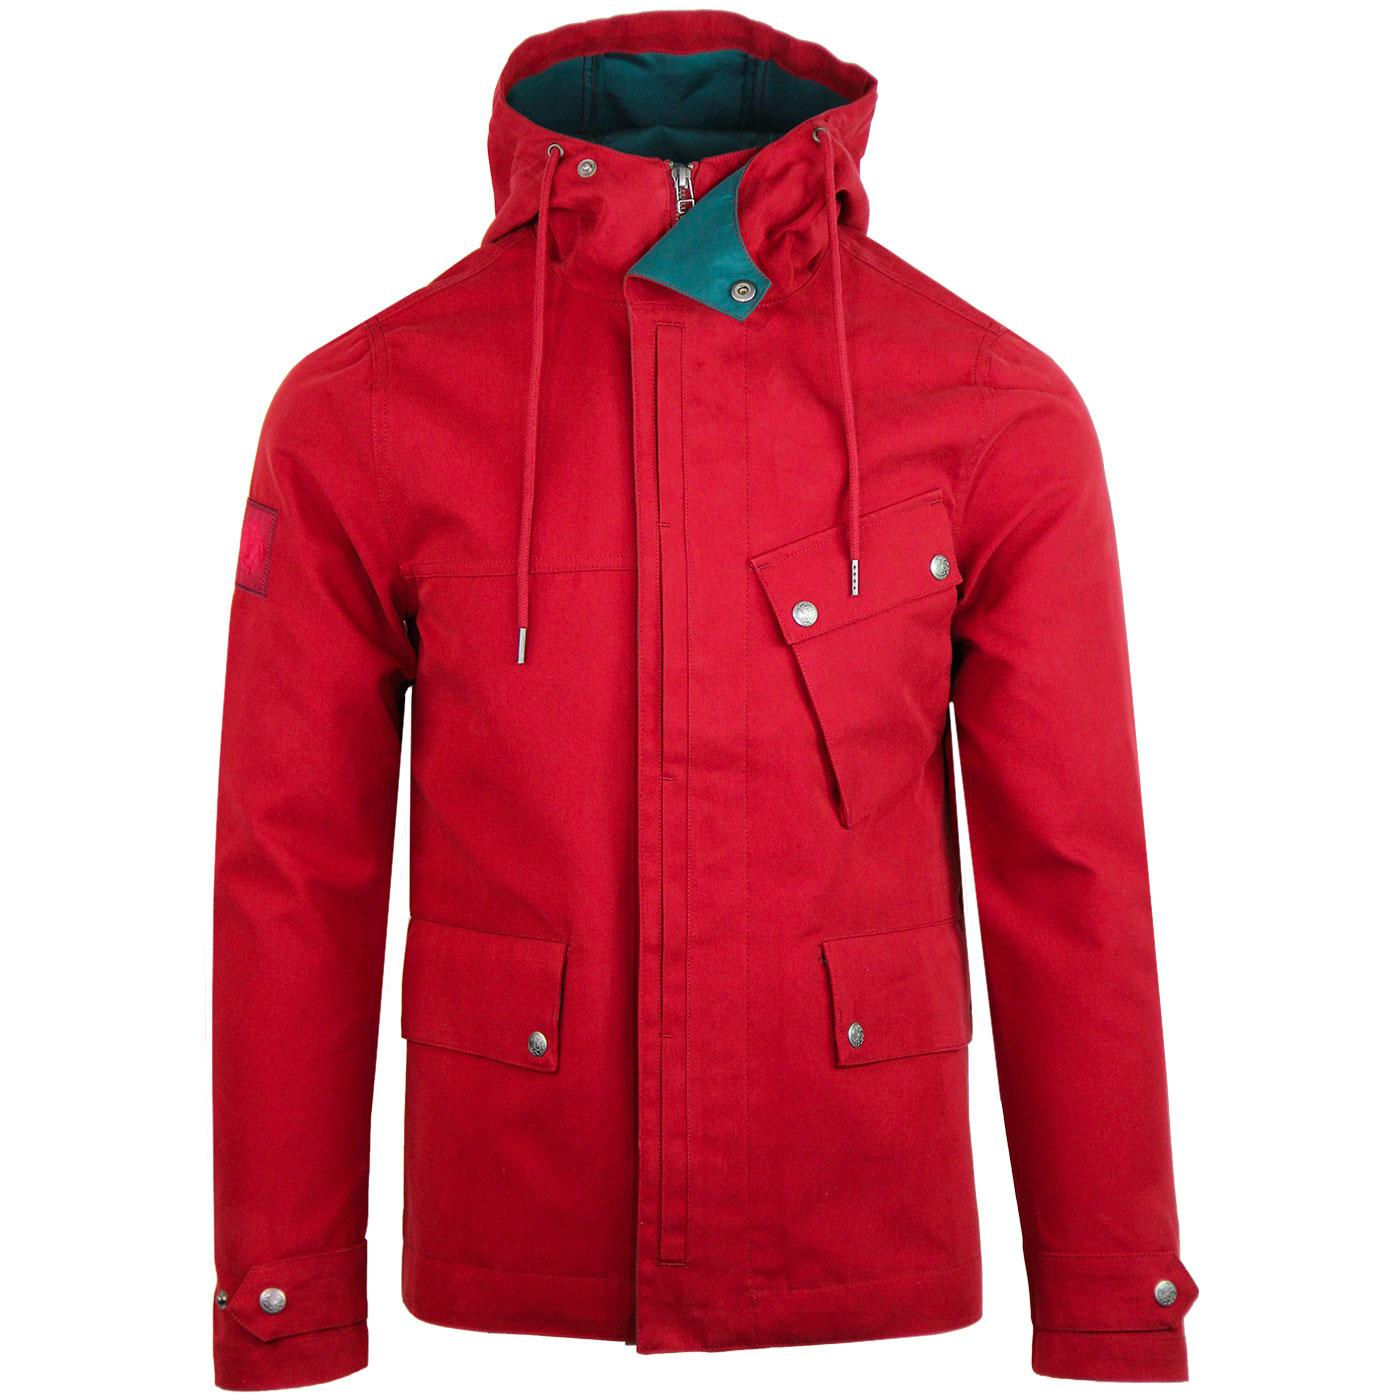 PRETTY GREEN Retro Contrast Trim Hooded Jacket RED